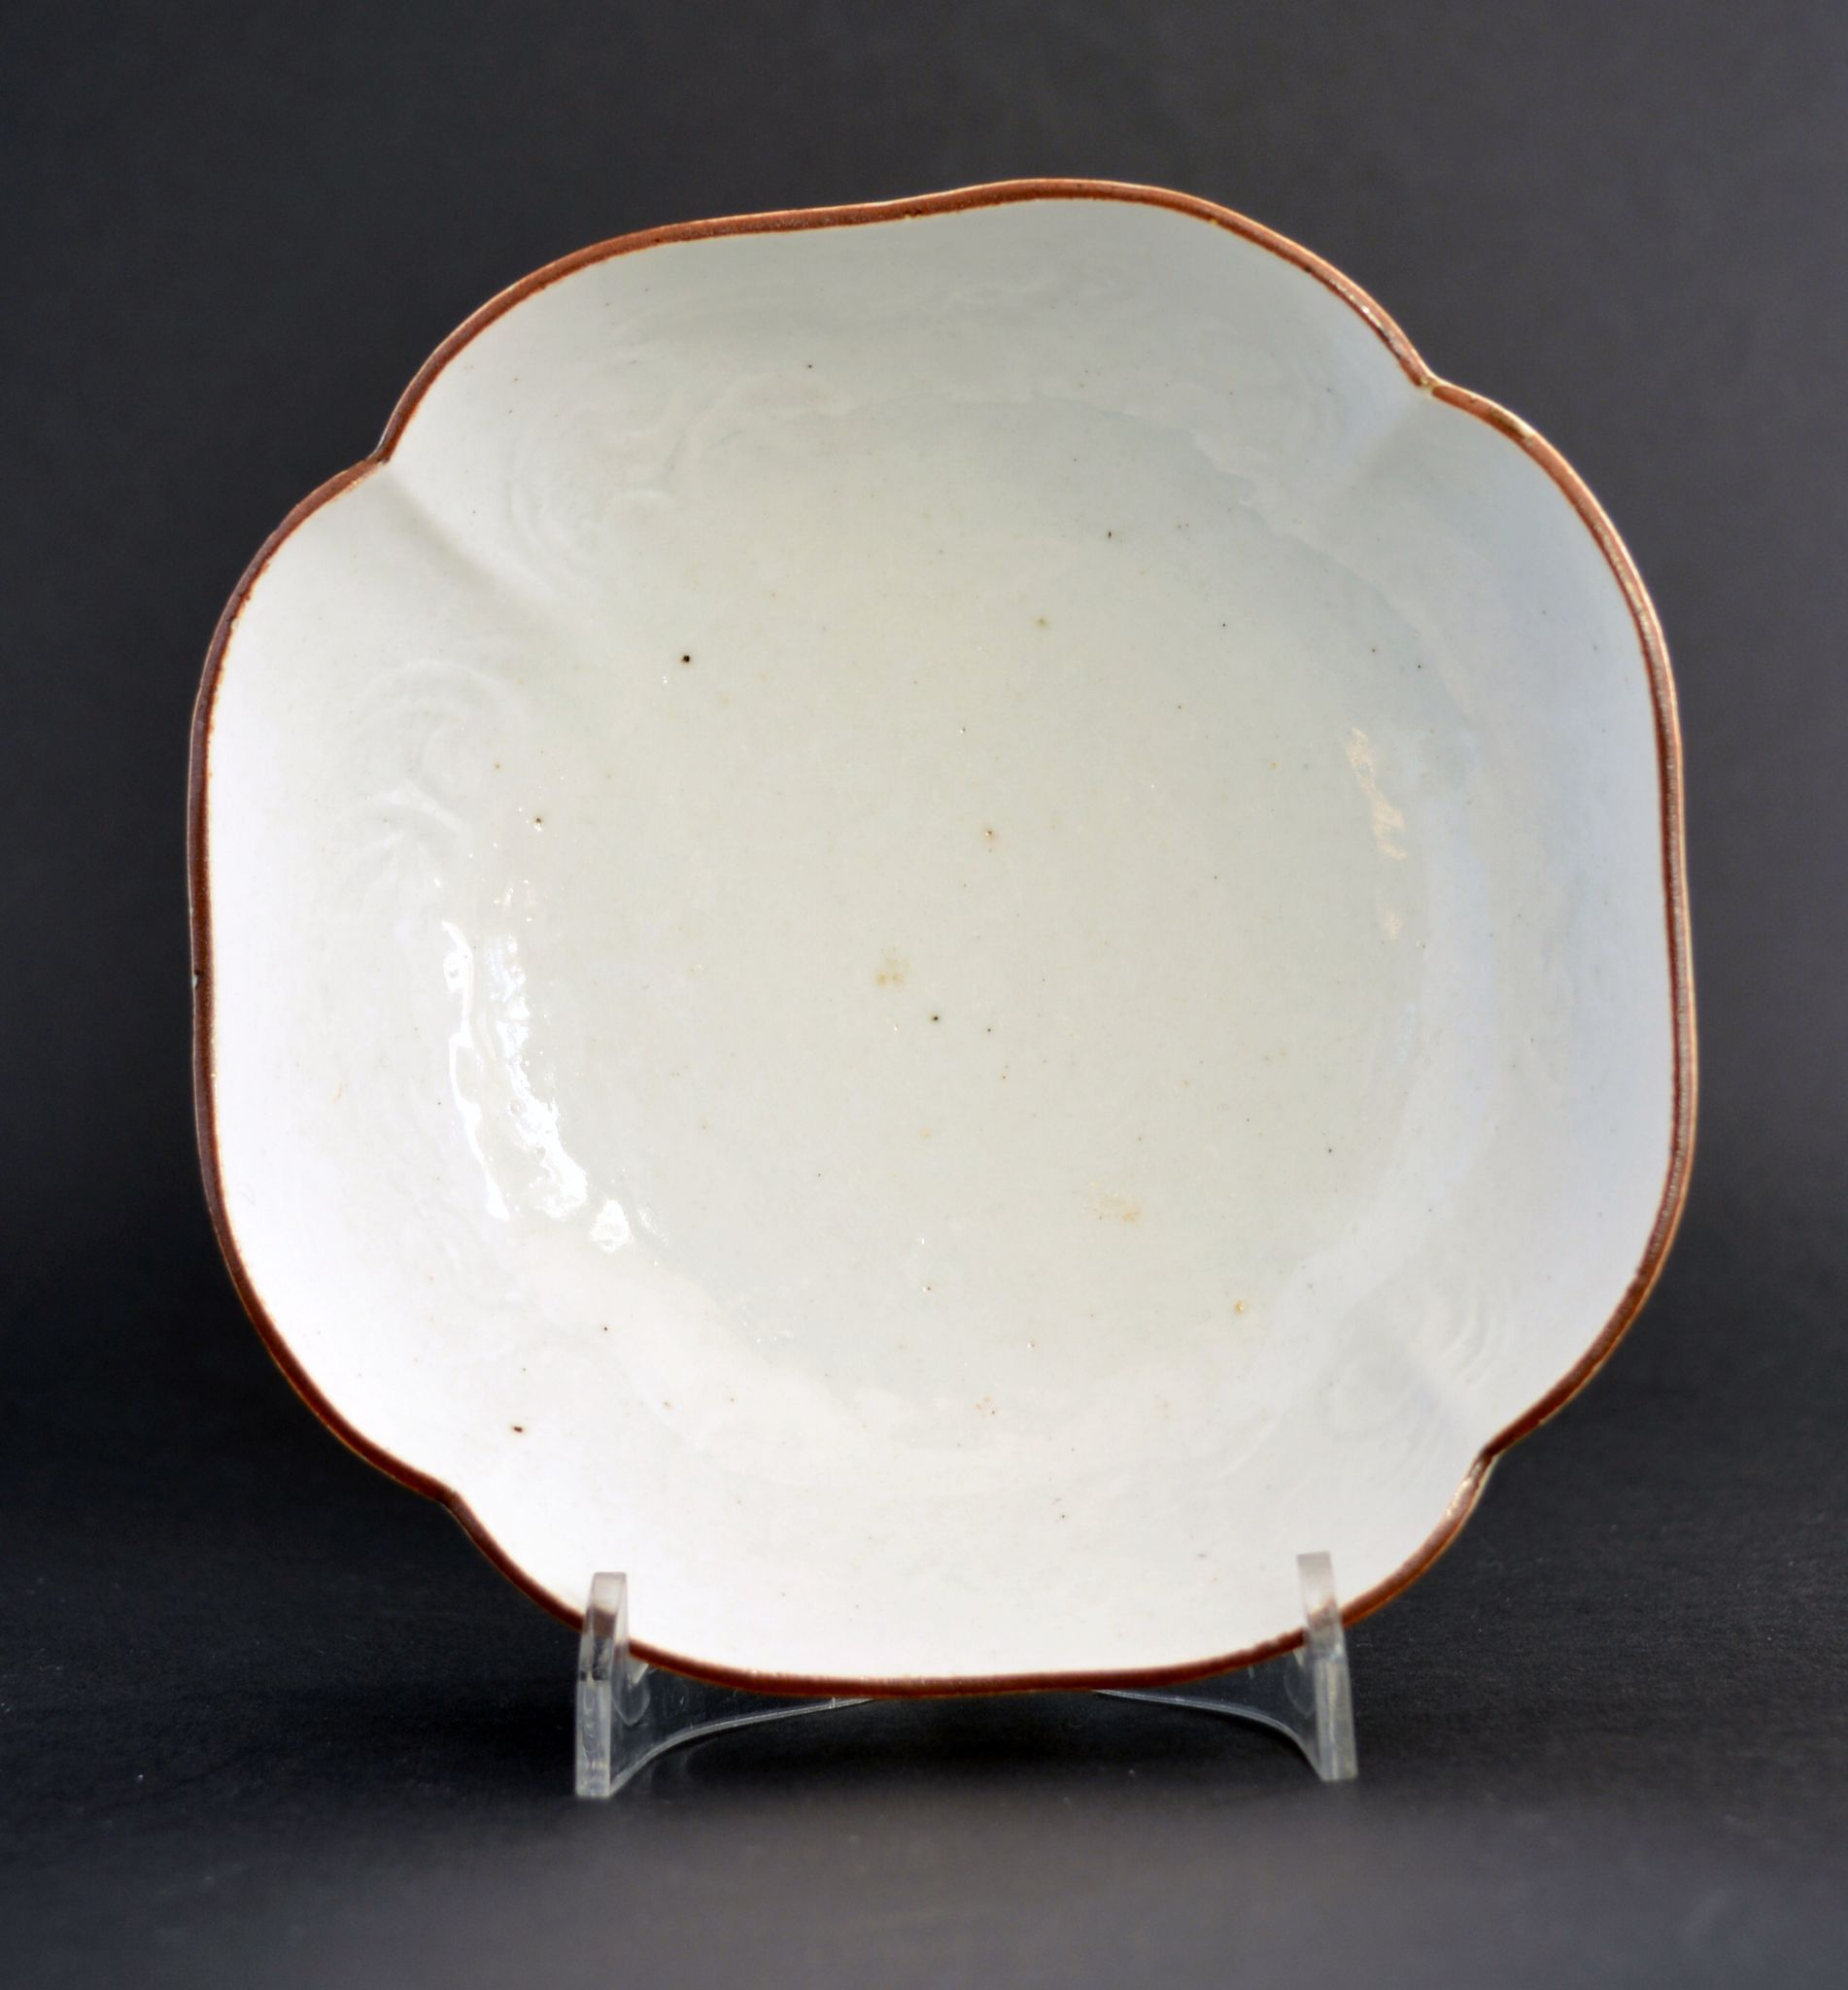 A 17th Century Kakiemon Nigoshide Porcelain Bowl c.1670-1700. The Square Lobed Form with Steep Sides is Lightly and Indistinctly Moulded with What Might be Flowers. The Rim is Dressed with a Brown Iron Rich Kuchibeni (Meaning lipstick).